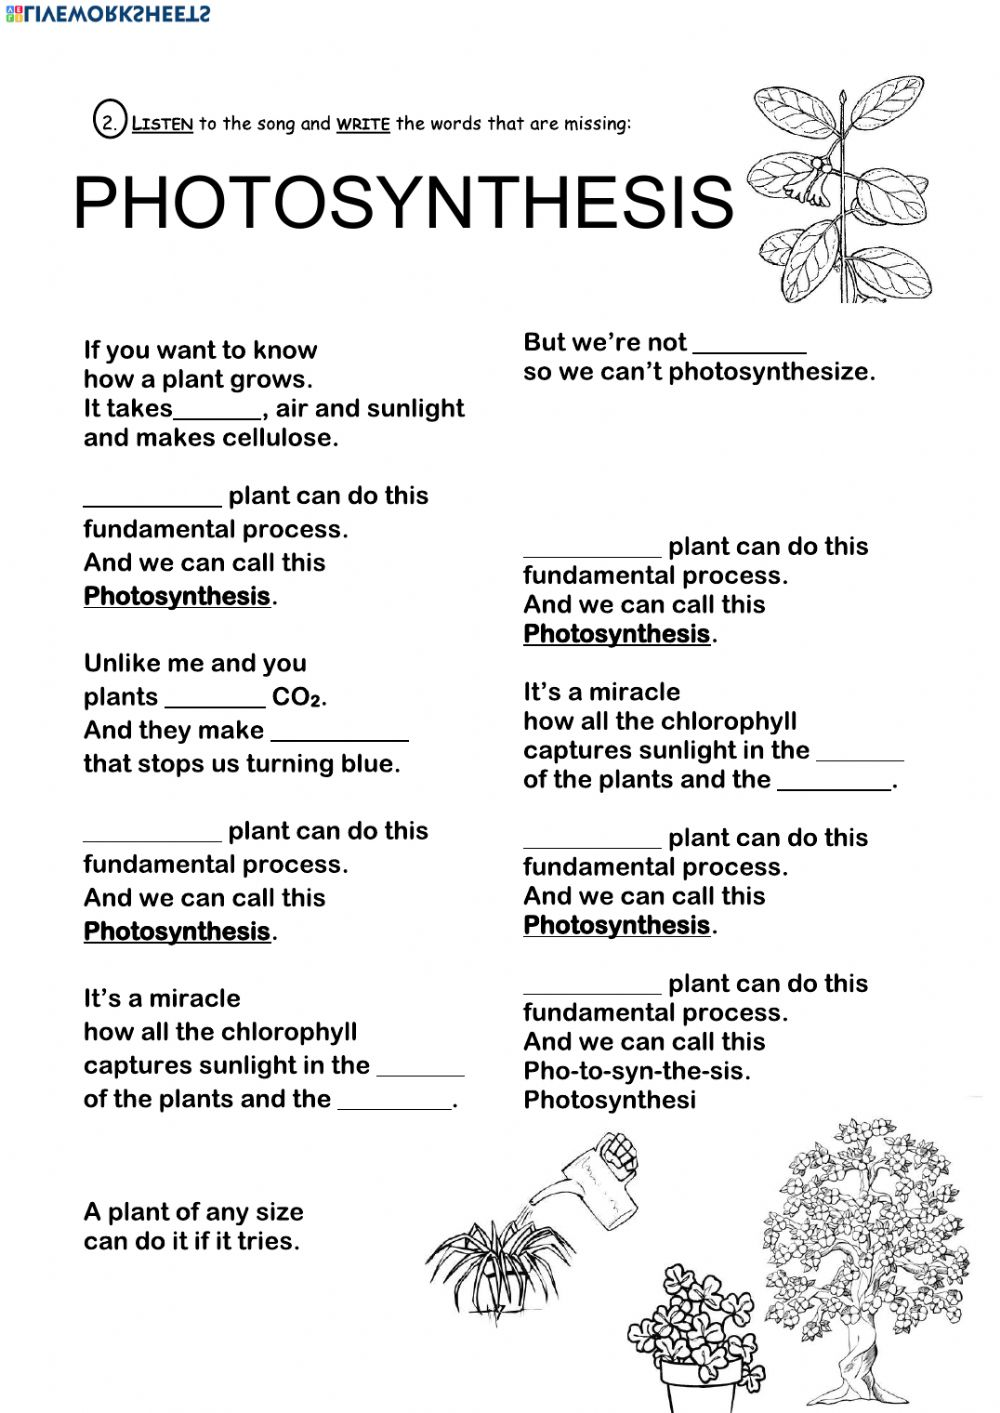 Photosynthesis exercise for grade 4